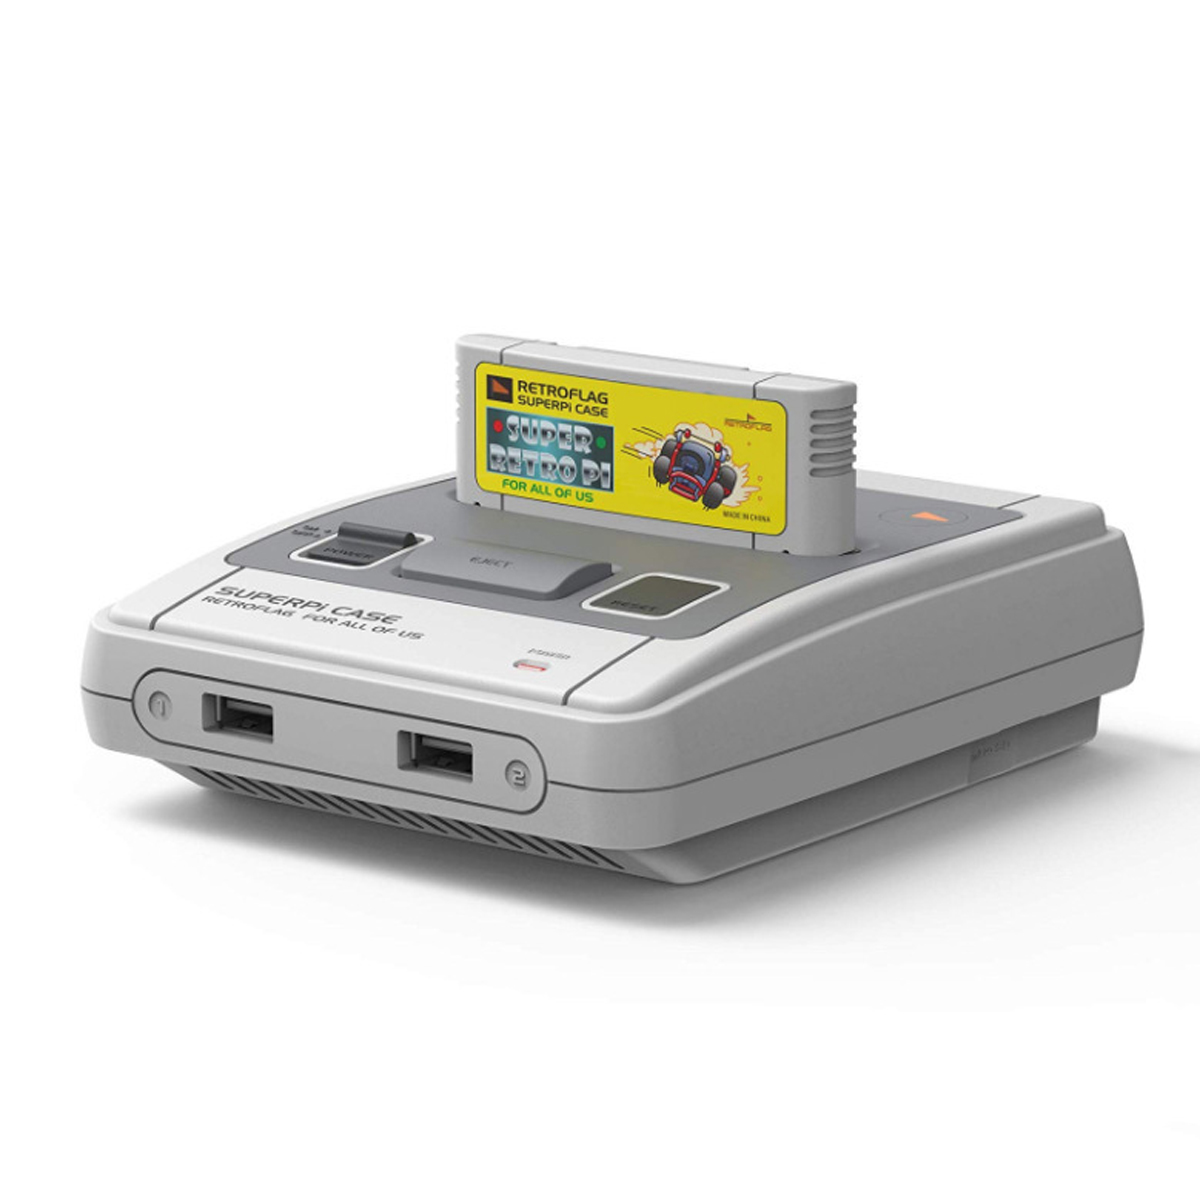 RETROFLAG SUPERPI CASE DELUXE EDITION-J/U WITH CLASSIC USB CONTROLLER FOR RASPBERRY PI